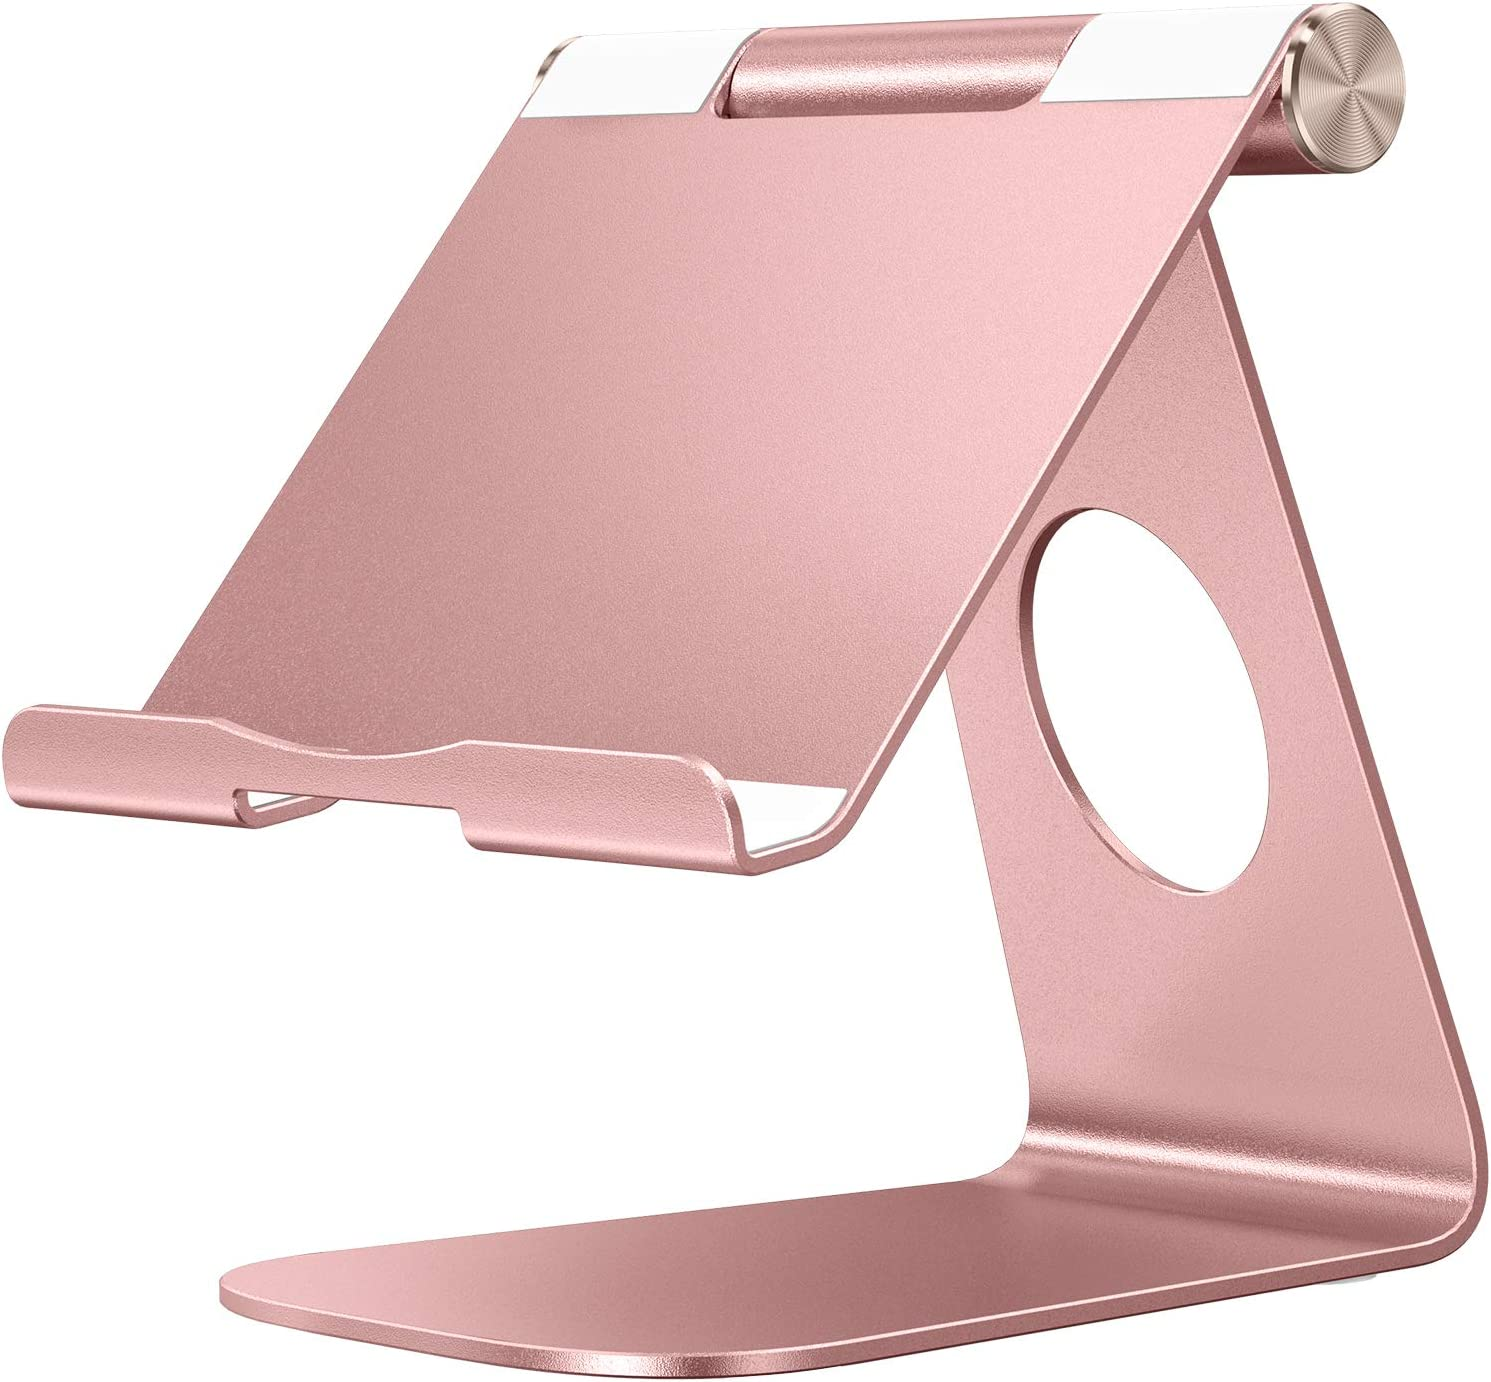 Tablet Stand Holder Adjustable, OMOTON T1 iPad Stand, Desktop Aluminum Holder Dock Compatible with iPad 10.2/9.7, iPad Pro 11/12.9, iPad Mini/Air, Samsung, Nintendo and More, Rose Gold